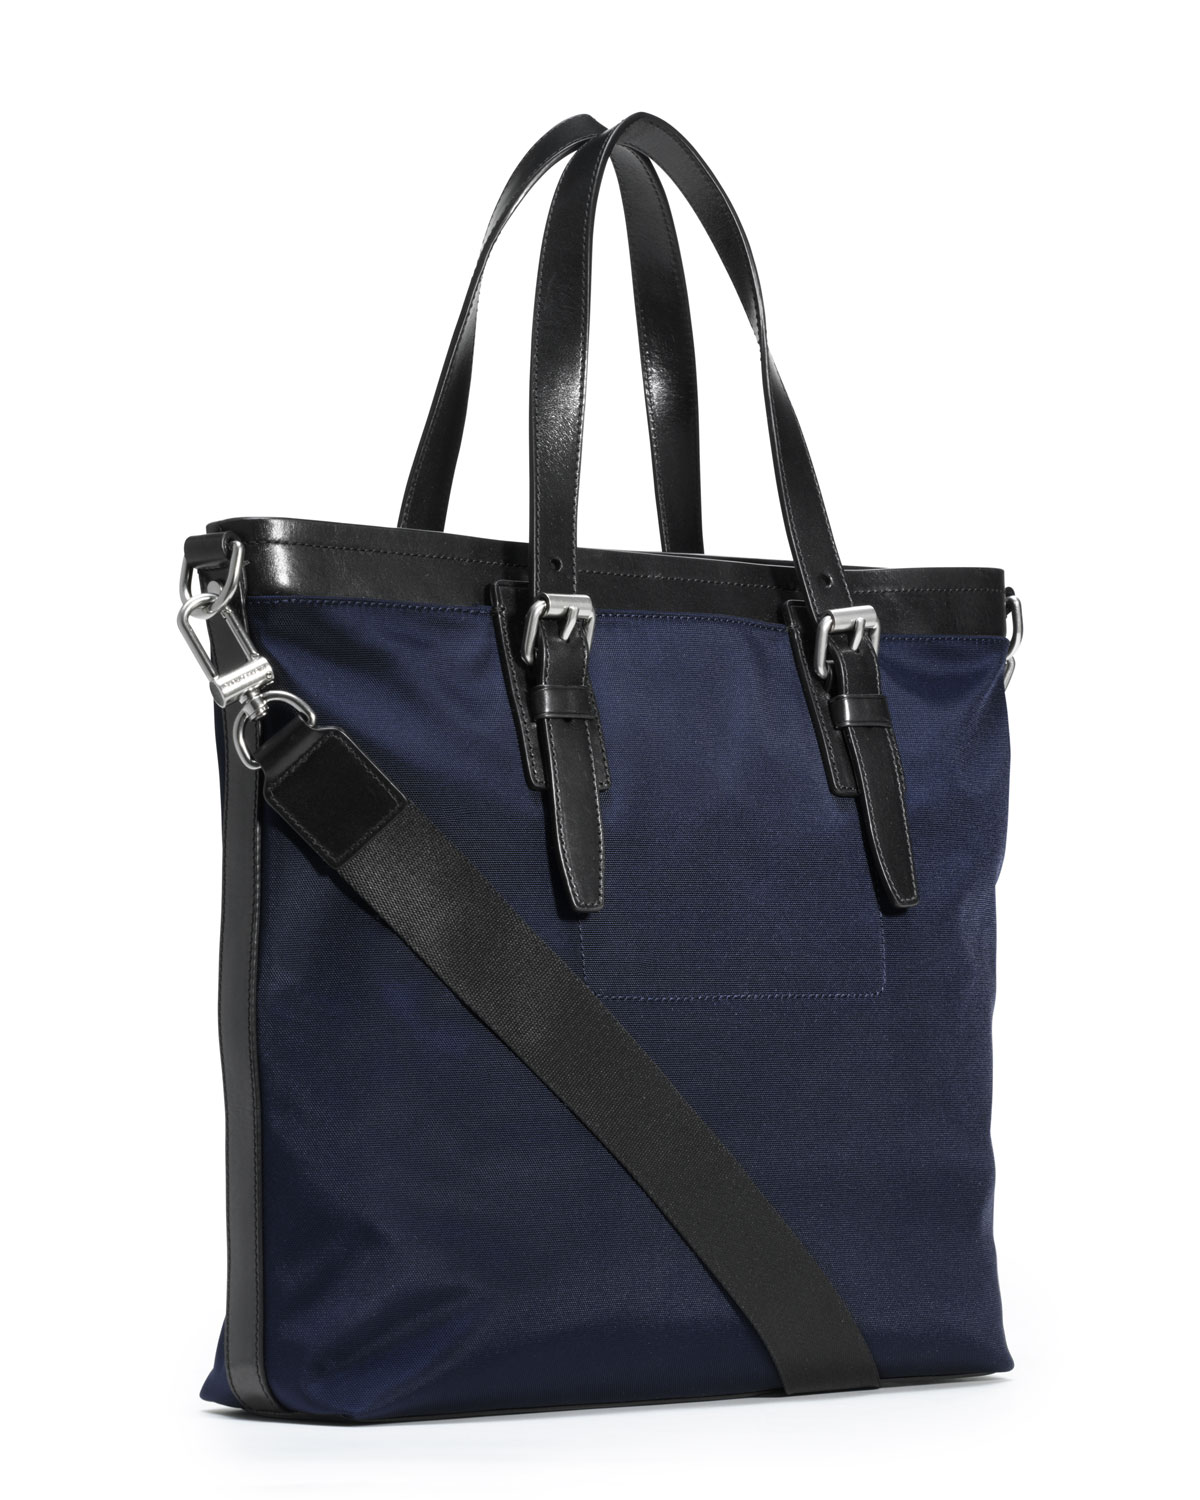 4fdac529057a Navy Blue Mk Tote | Stanford Center for Opportunity Policy in Education